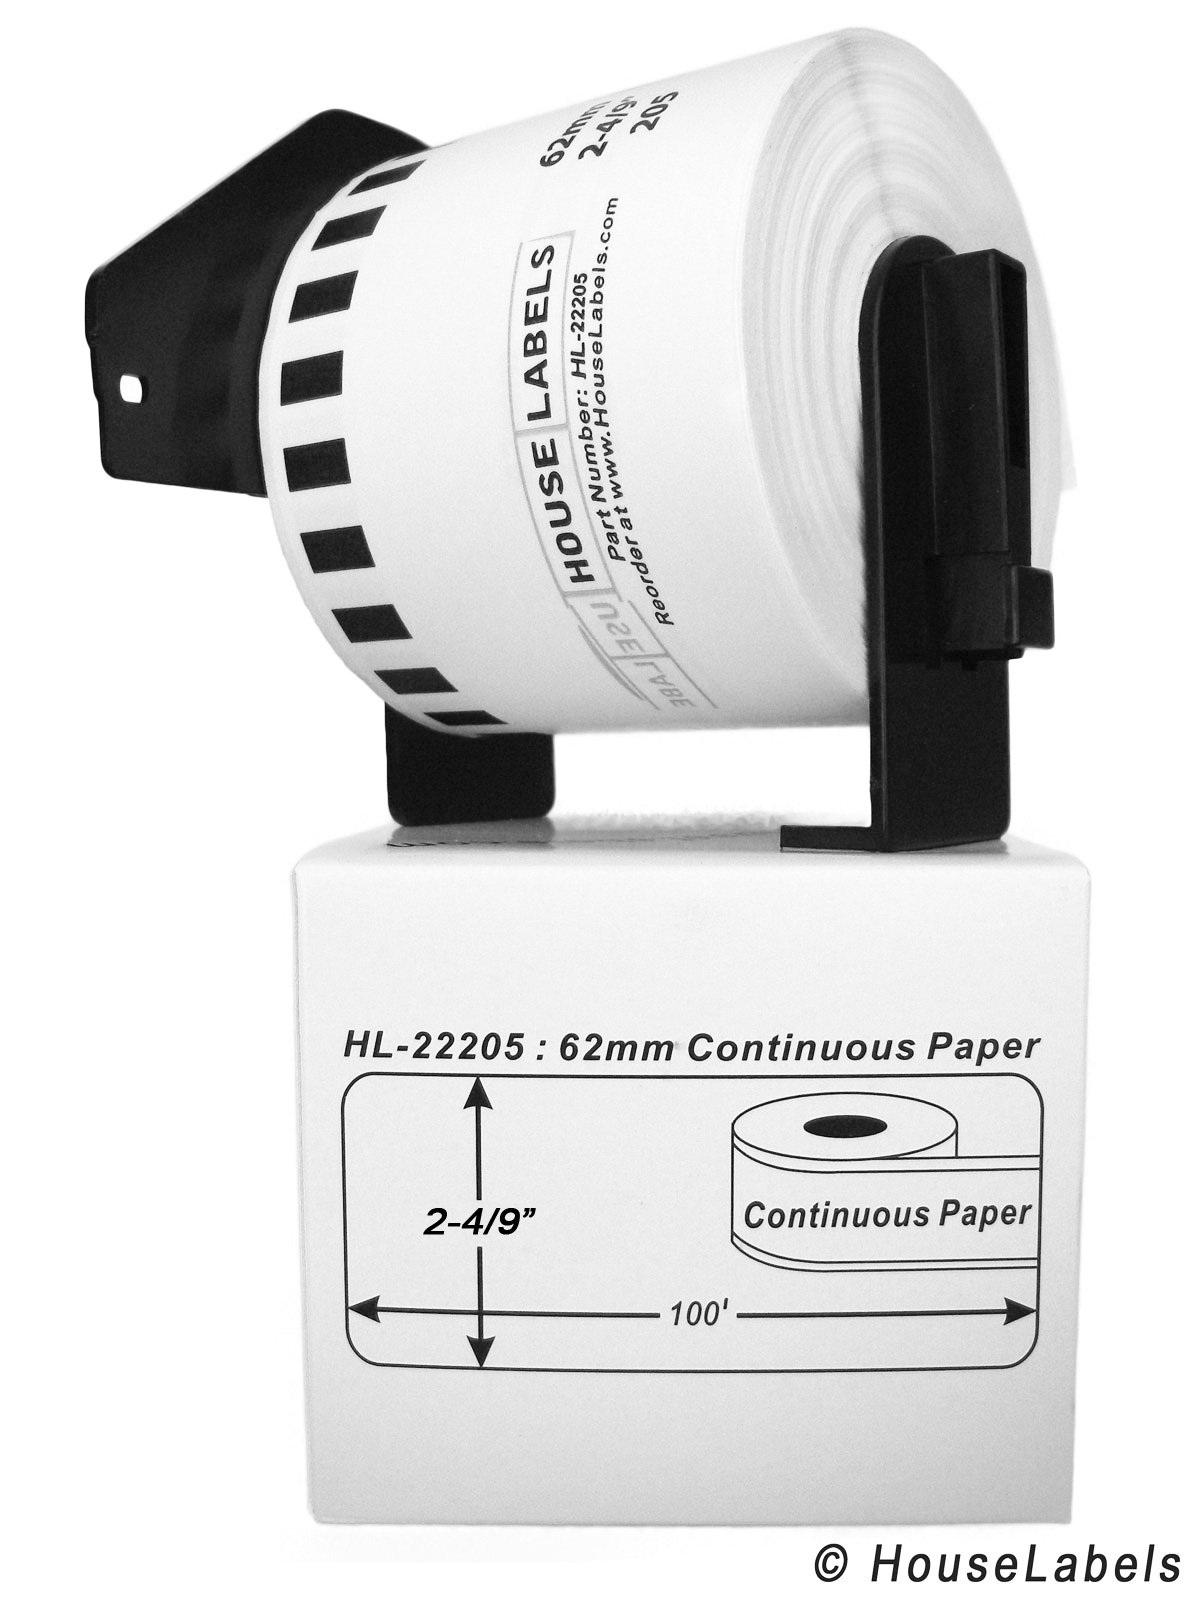 12 Rolls; Continuous Paper, BROTHER-Compatible DK-2205 Continuous Paper Labels with ONE (1) reusable cartridge (2-4/9'' x 100'; 62mm30.48m) -- BPA Free!